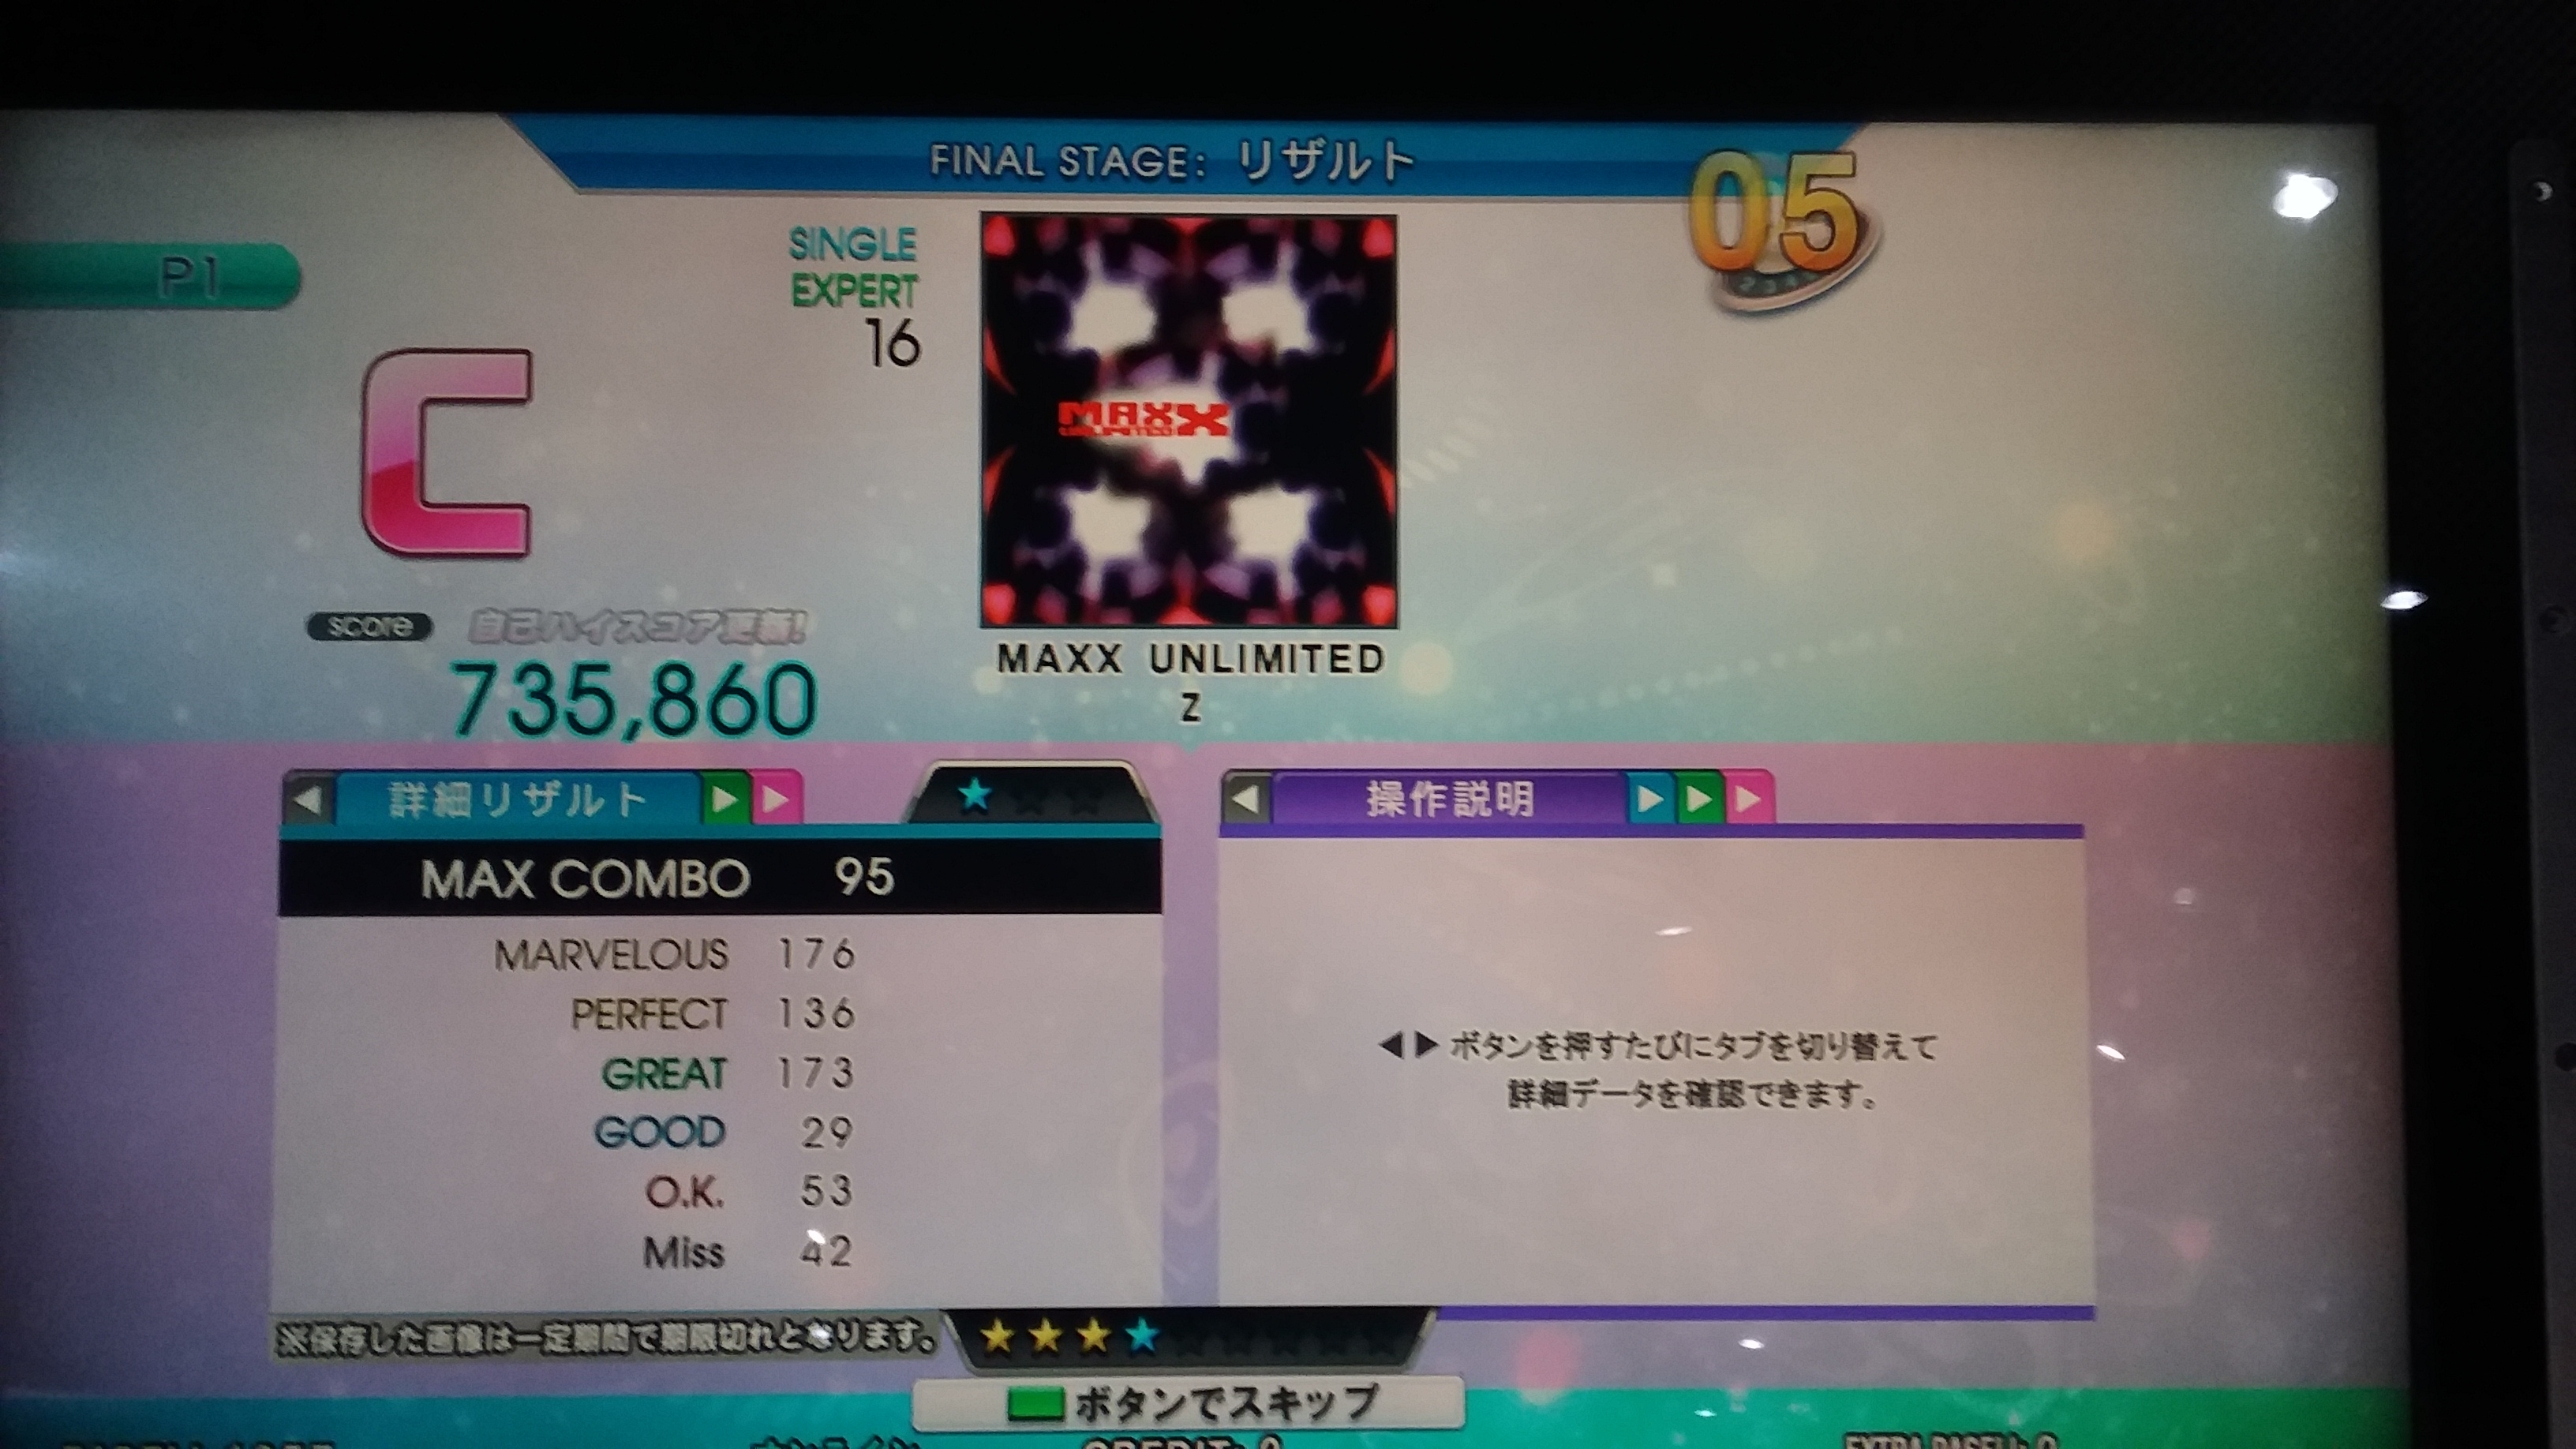 MAXX UNLIMITED(激)